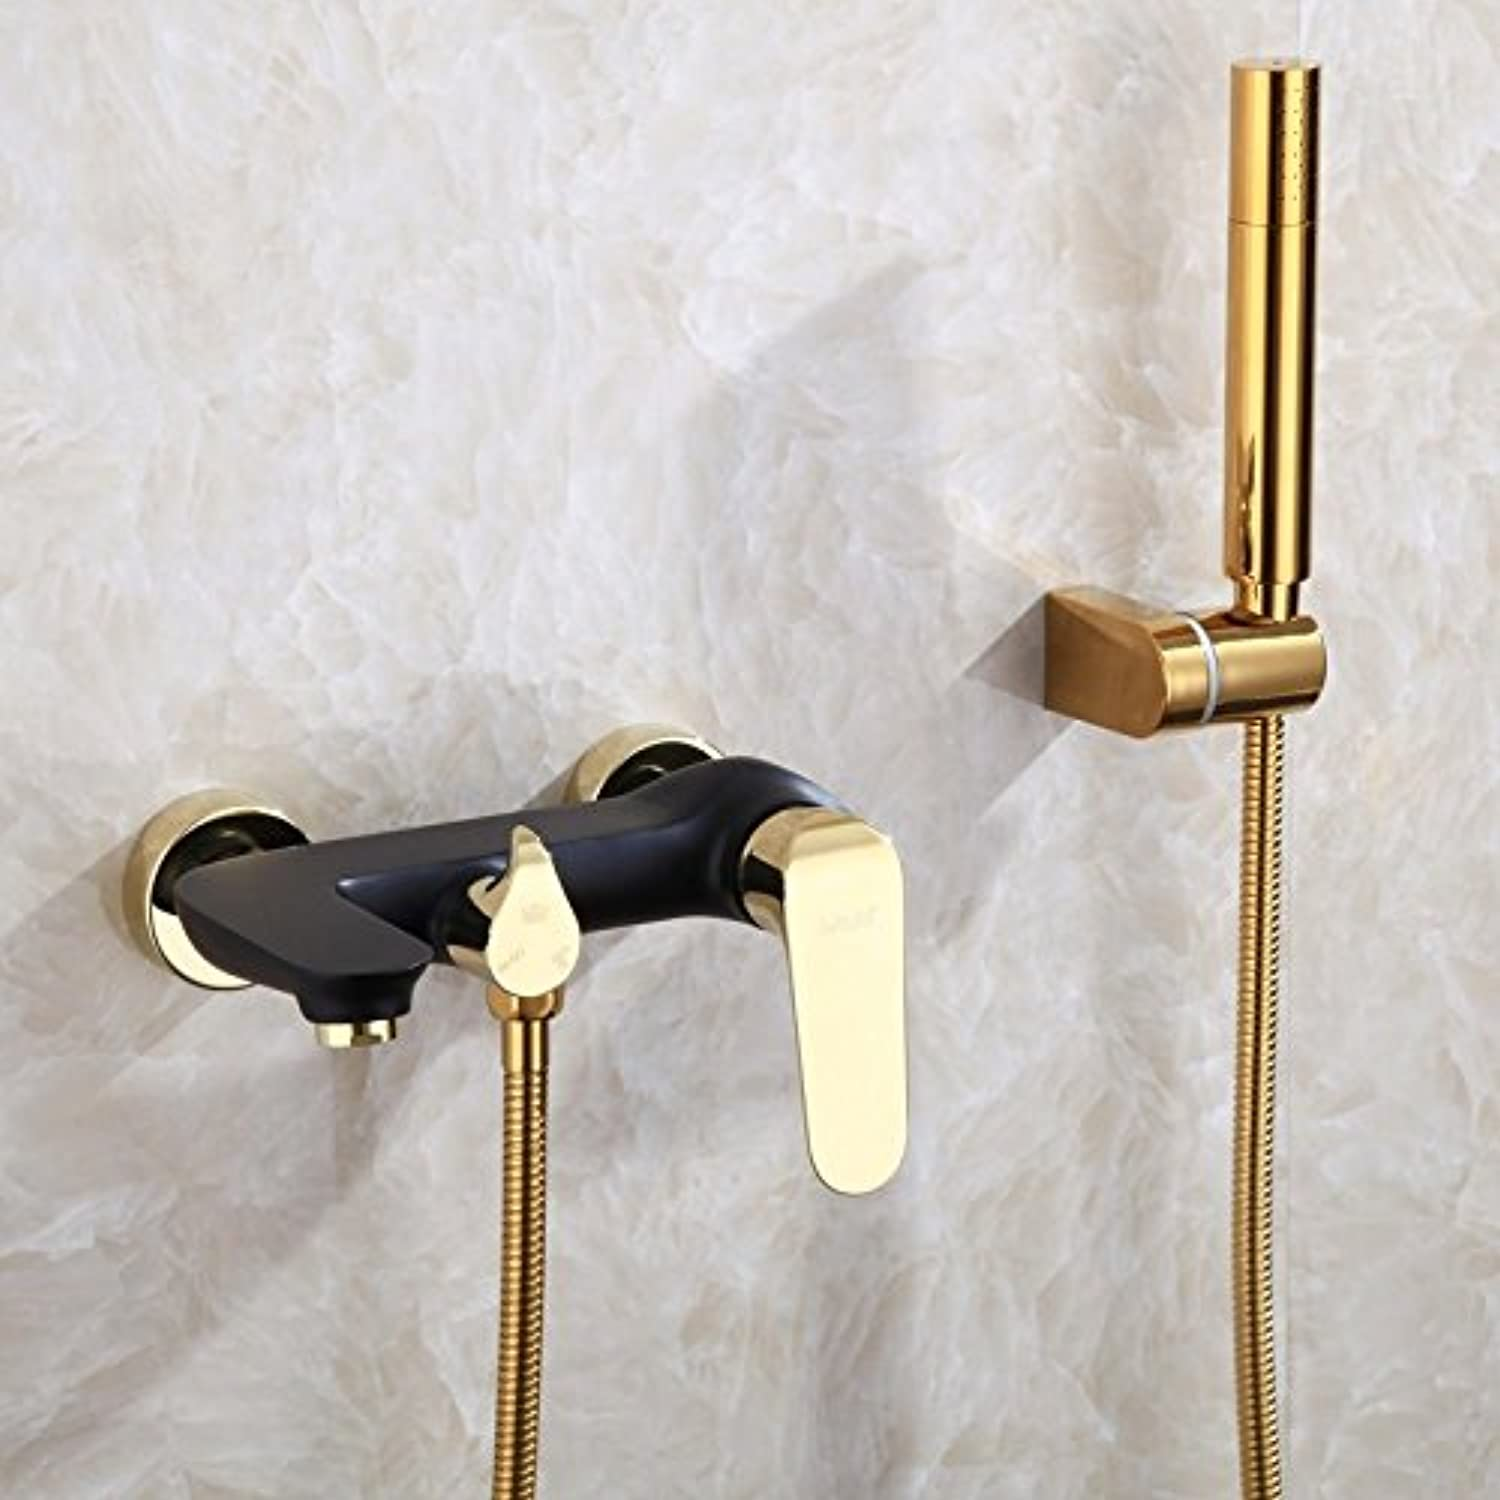 JONTON Bathroom Faucet Sink Taps Diy & Tools Taps All Copper Black gold Hot And Cold Bathtub Faucet Into The Wall Hand Shower Shower Set Cylinder Side Faucet, Black Faucet + Shower Set